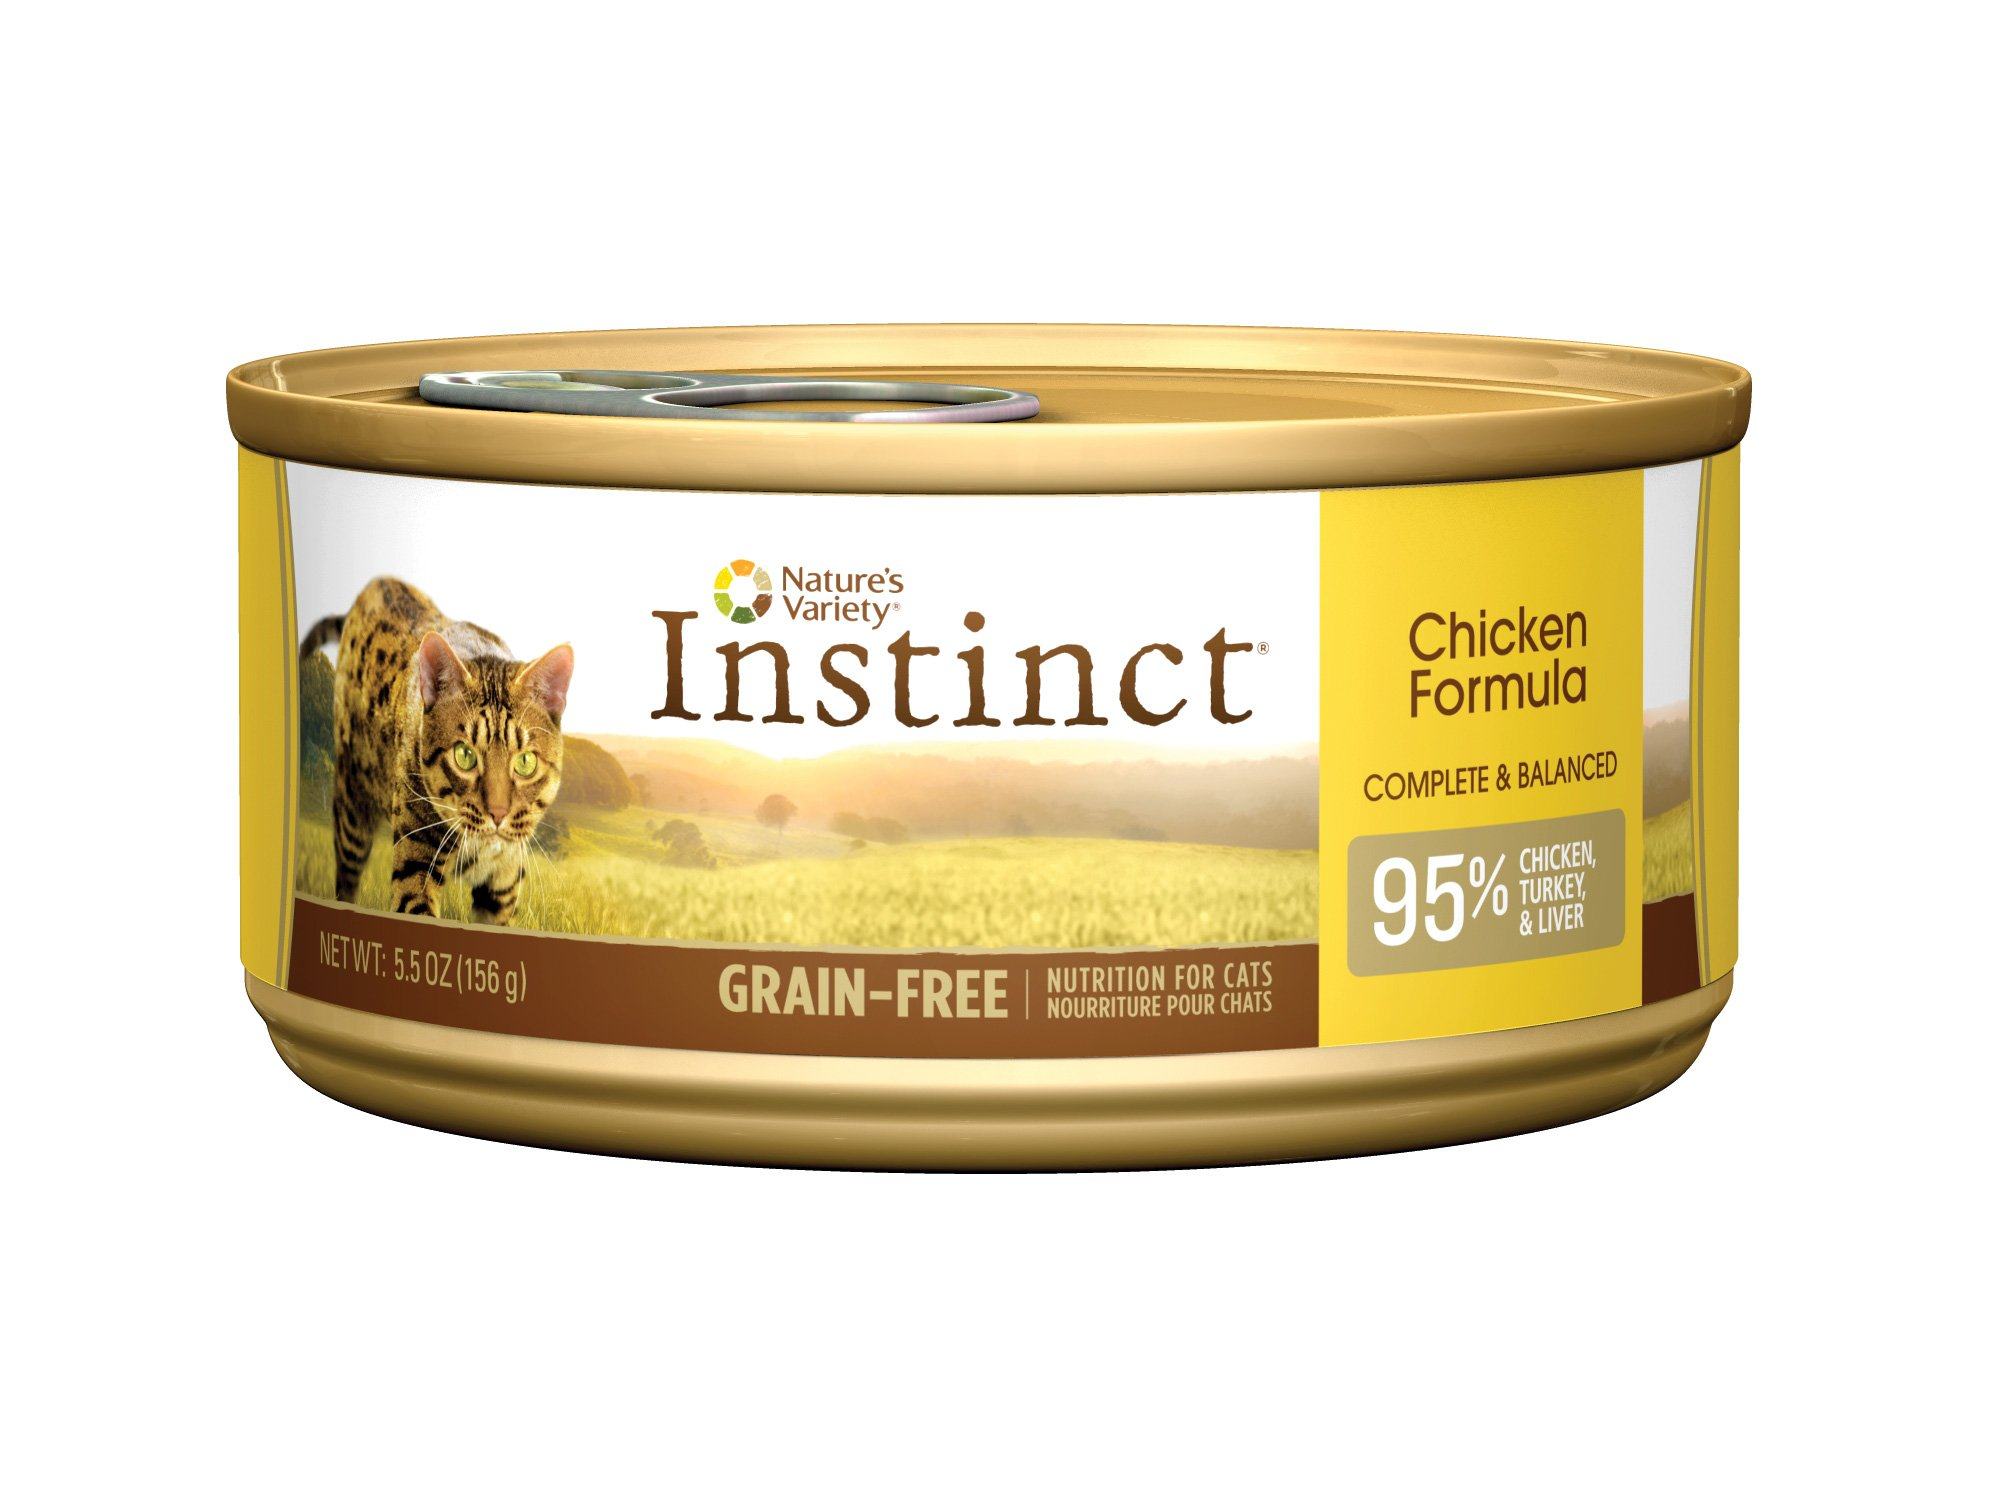 Nat ure's Variety Instinct Grain-Free Canned Cat Food